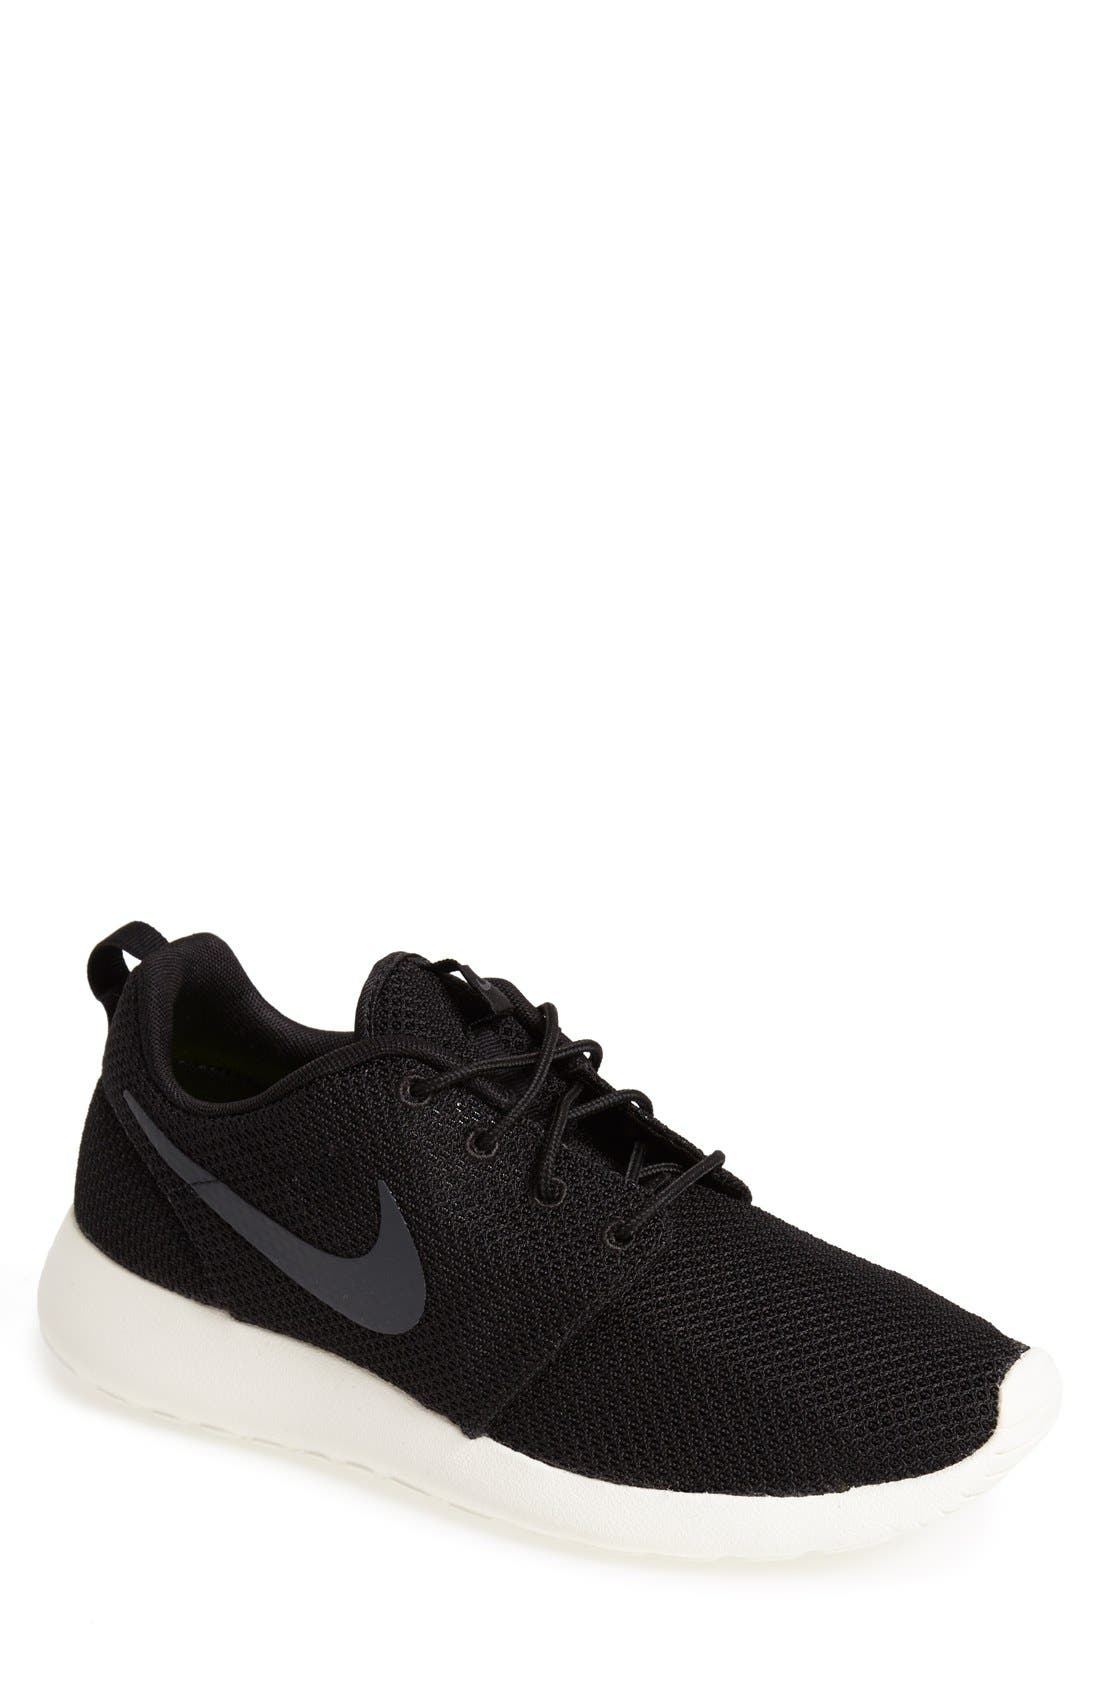 Alternate Image 1 Selected - Nike 'Roshe Run' Sneaker (Men)